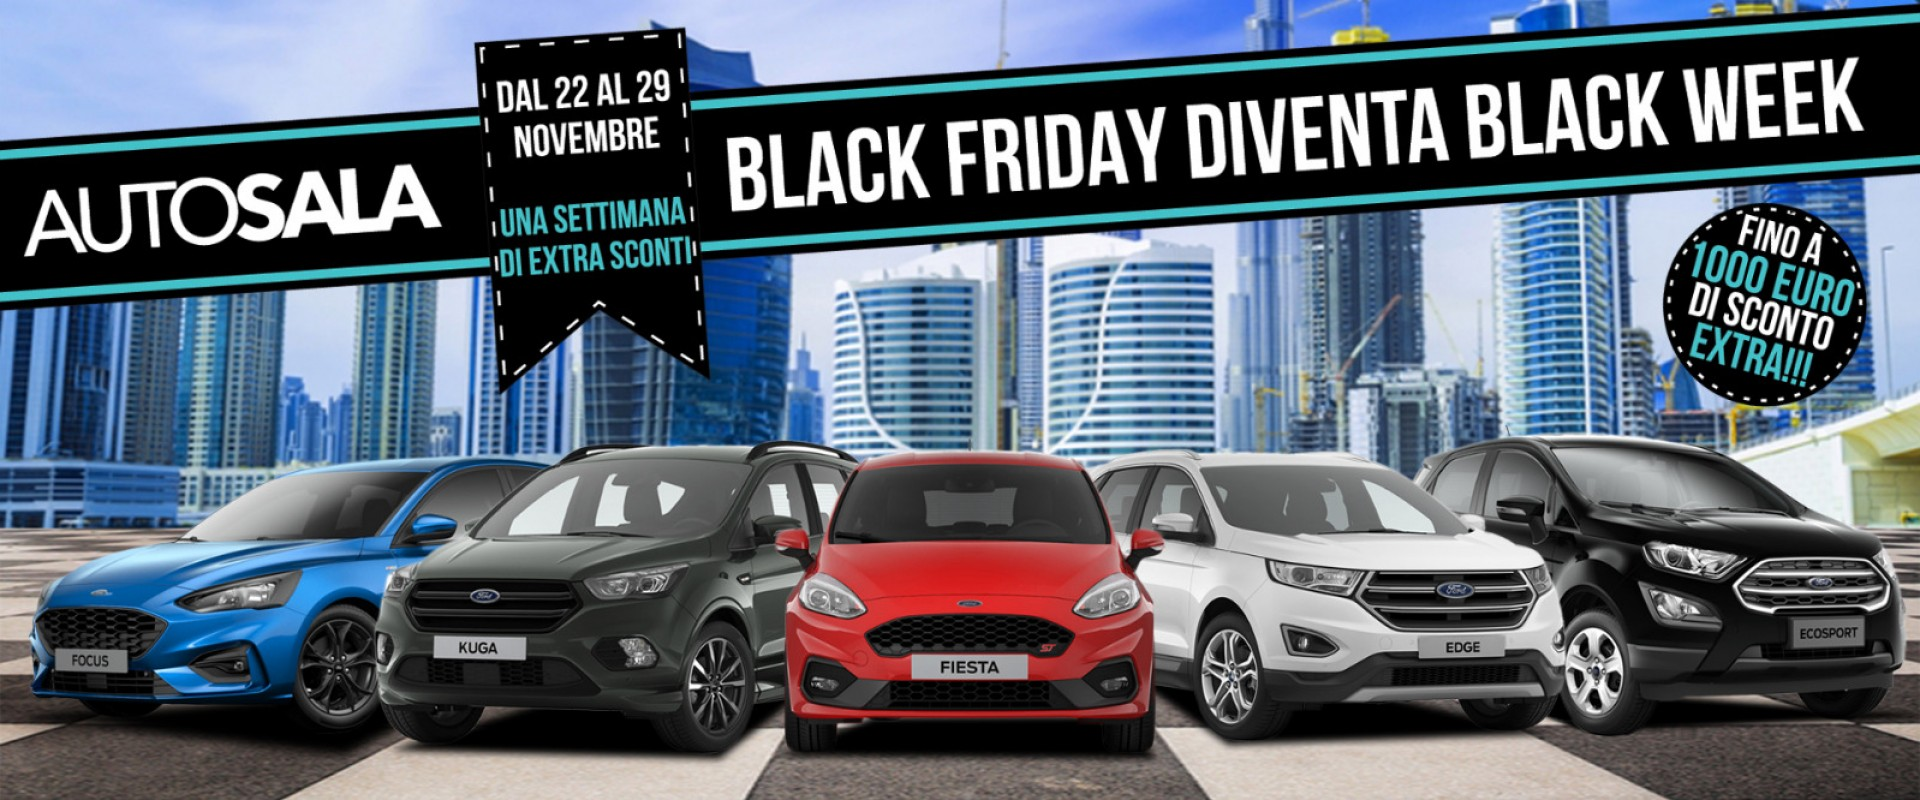 Black Friday diventa Black Week